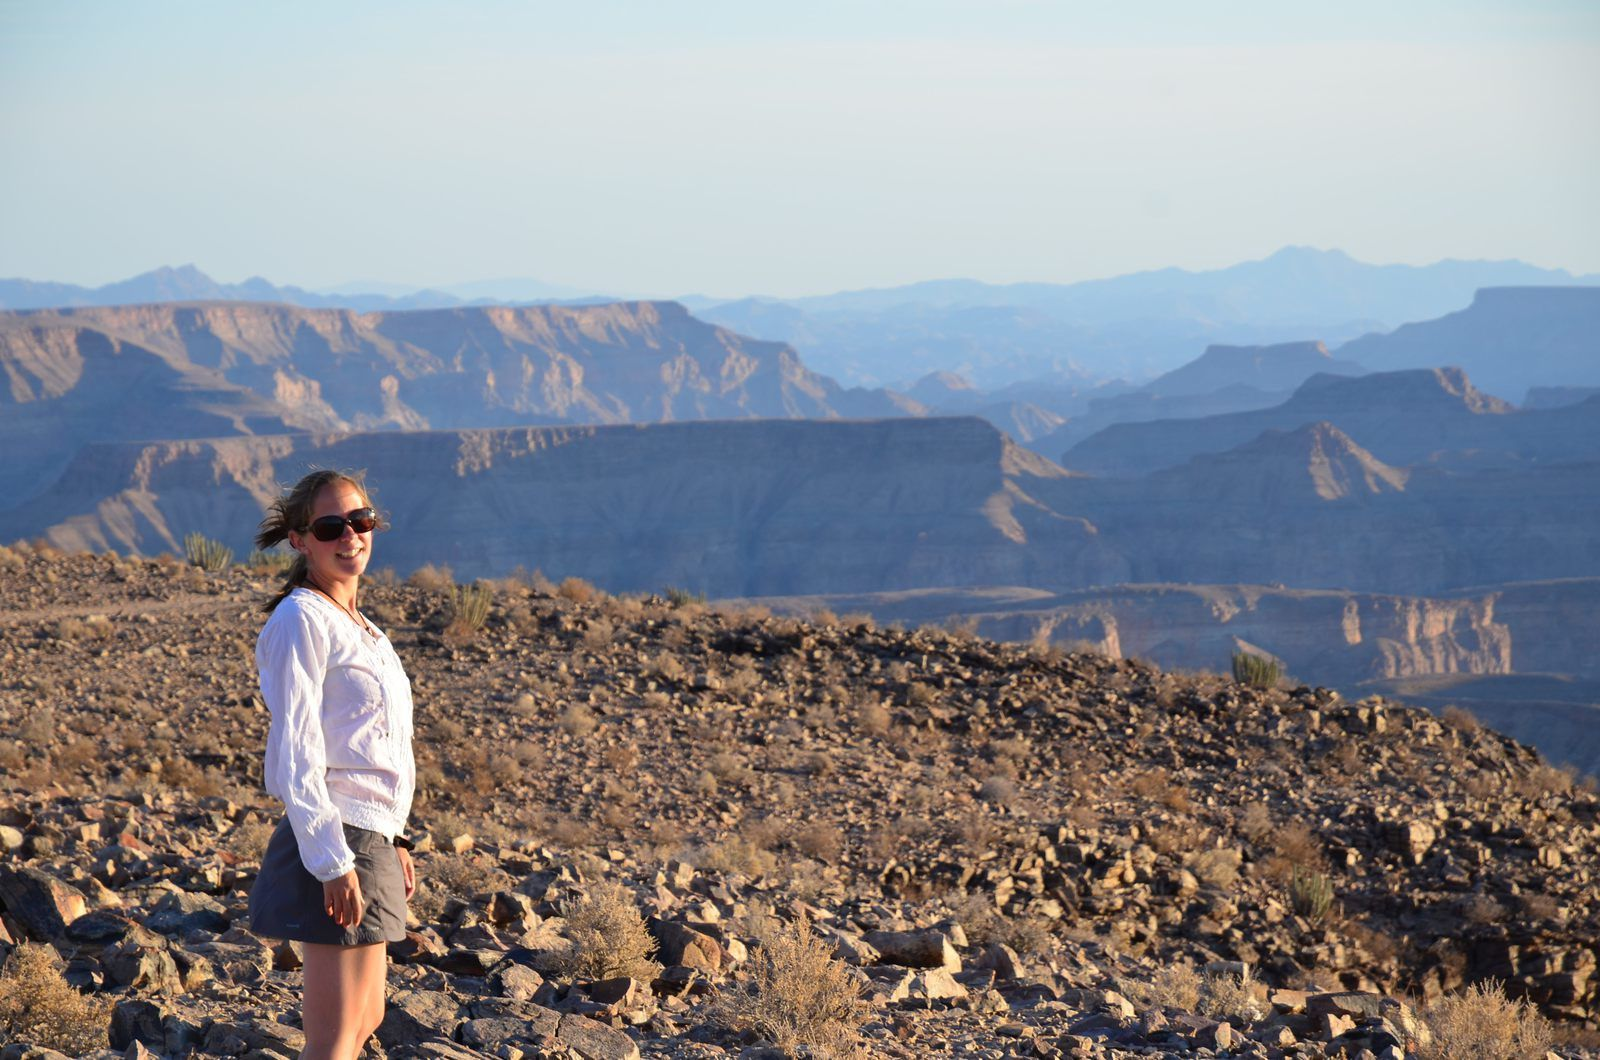 17/10/2013 - Fish River canyon